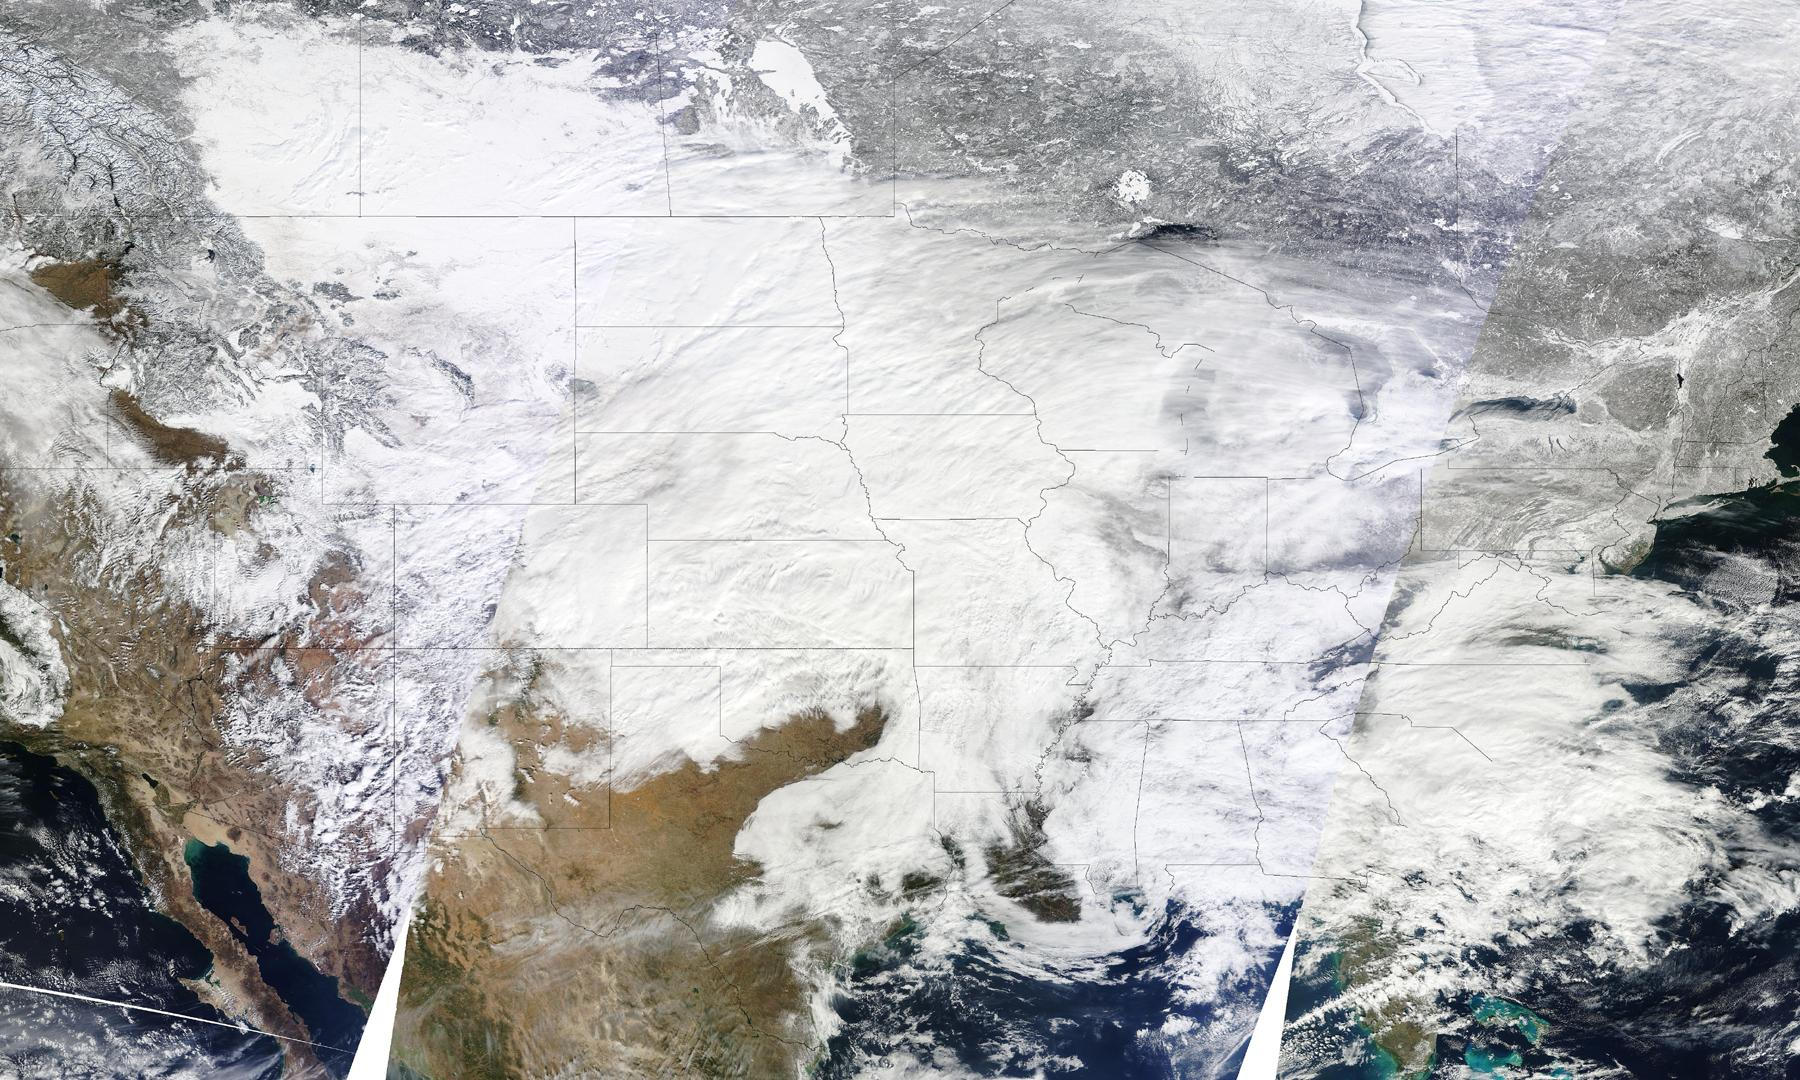 Three images from the Moderate Resolution Imaging Spectroradiometer (MODIS) aboard NASA's Terra satellite were combined to create this image of the storm system. The images were captured on Jan. 31 at 10:30 a.m., 12:05 p.m., and 1:45 p.m. ET (15:30, 17:05, and 18:45 UTC). Diagonal lines across the image show the boundaries between the overpasses. White gaps are areas where the sensor did not collect data. The image has a resolution of one kilometer per pixel. Credit: NASA Goddard MODIS Rapid Response Team